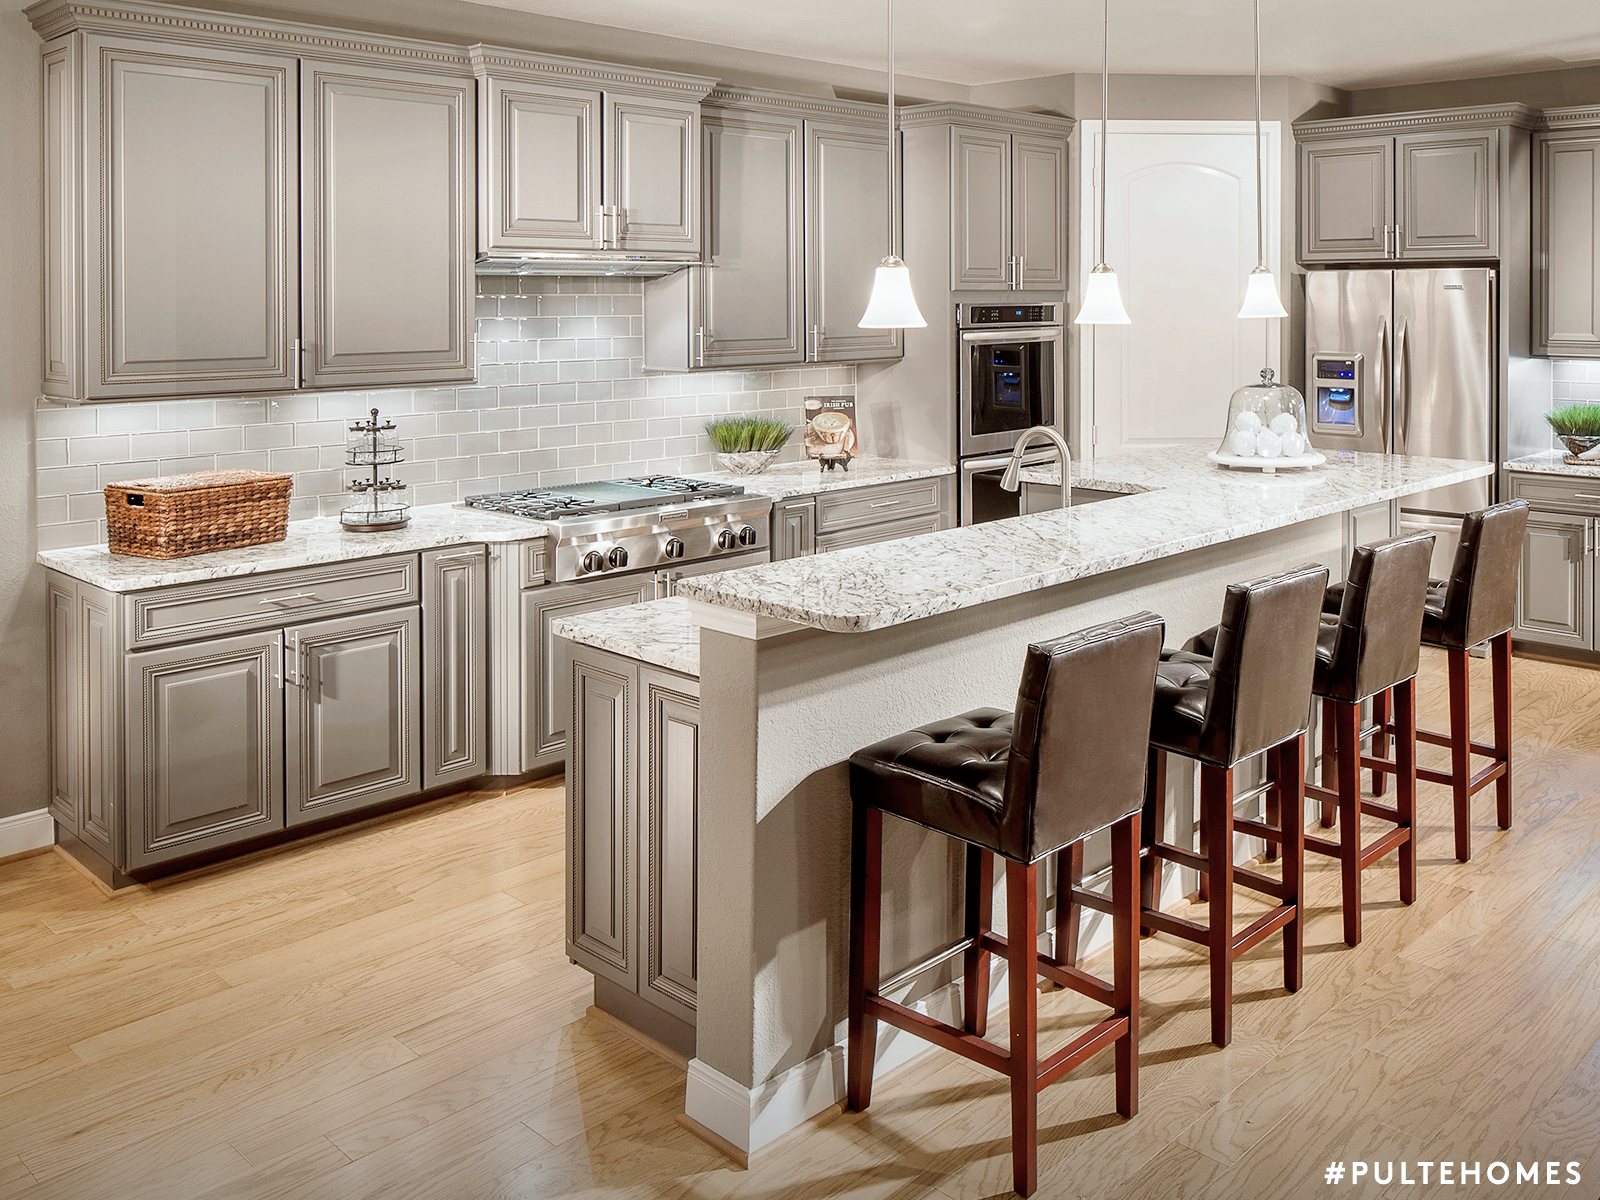 Expand your kitchenus palette painted gray cabinets paired with